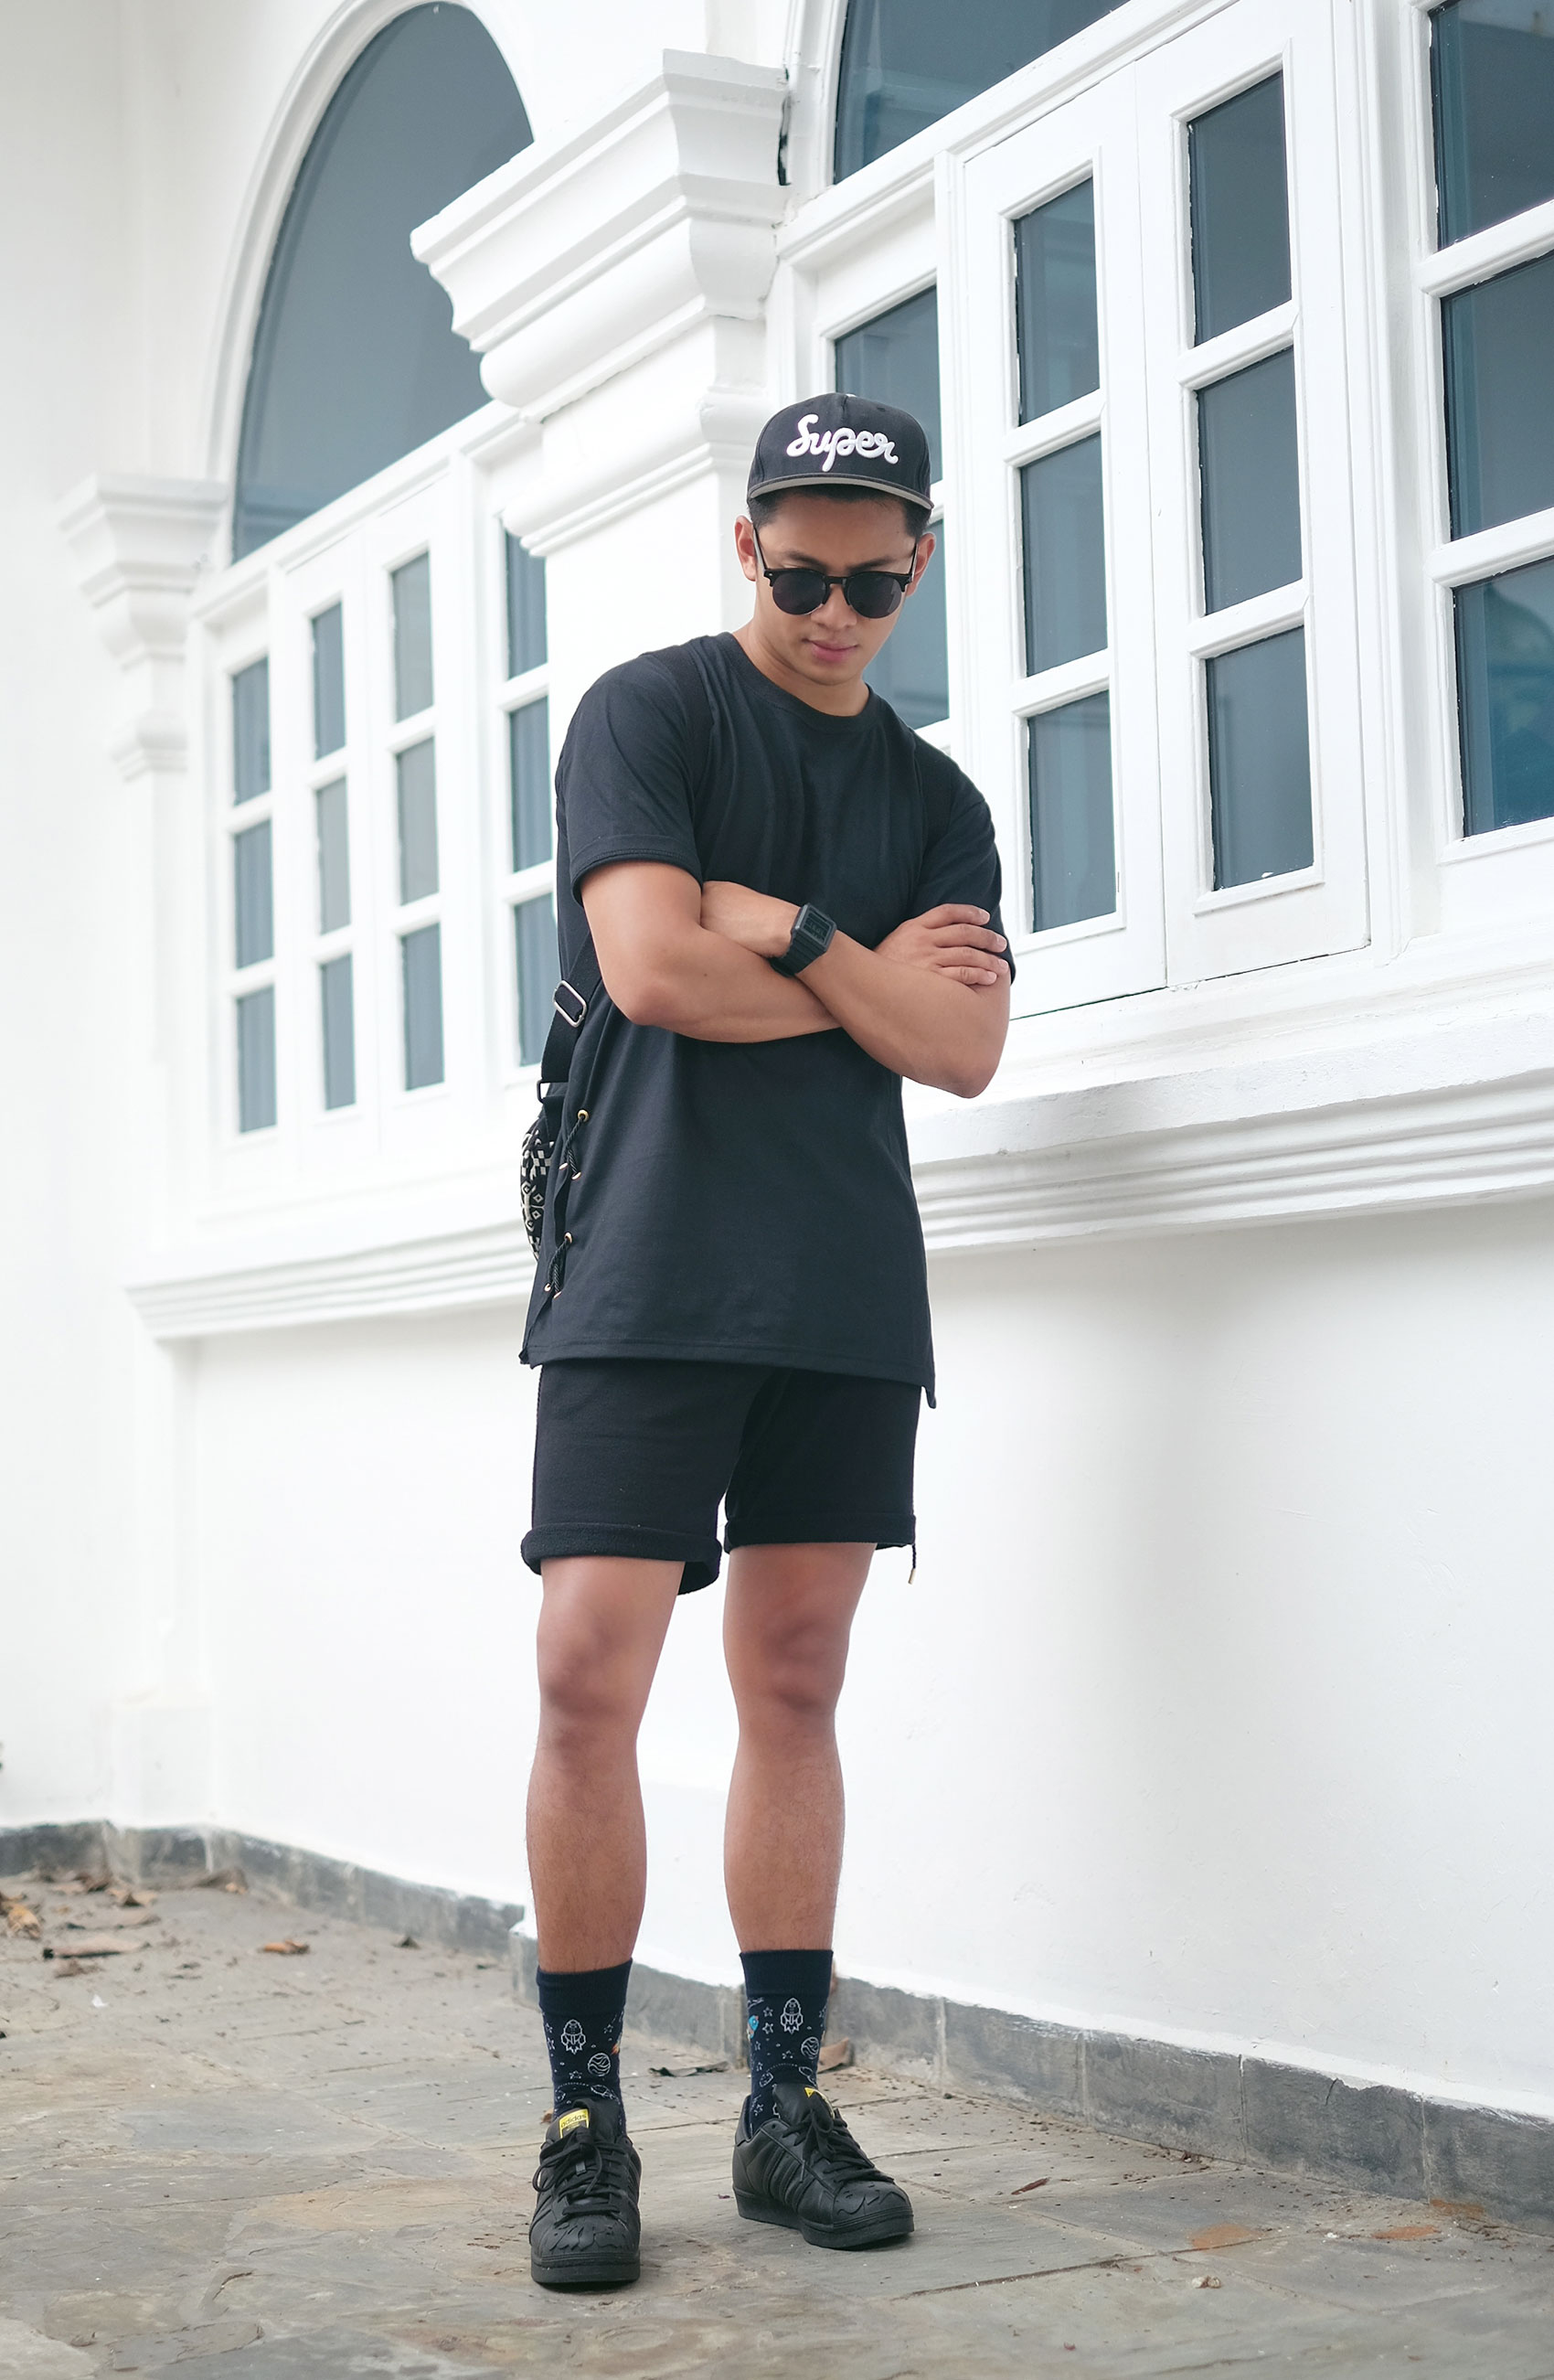 DG MANILA HOW TO WEAR BLACK DURING THE SUMMER (AND NOT DIE)